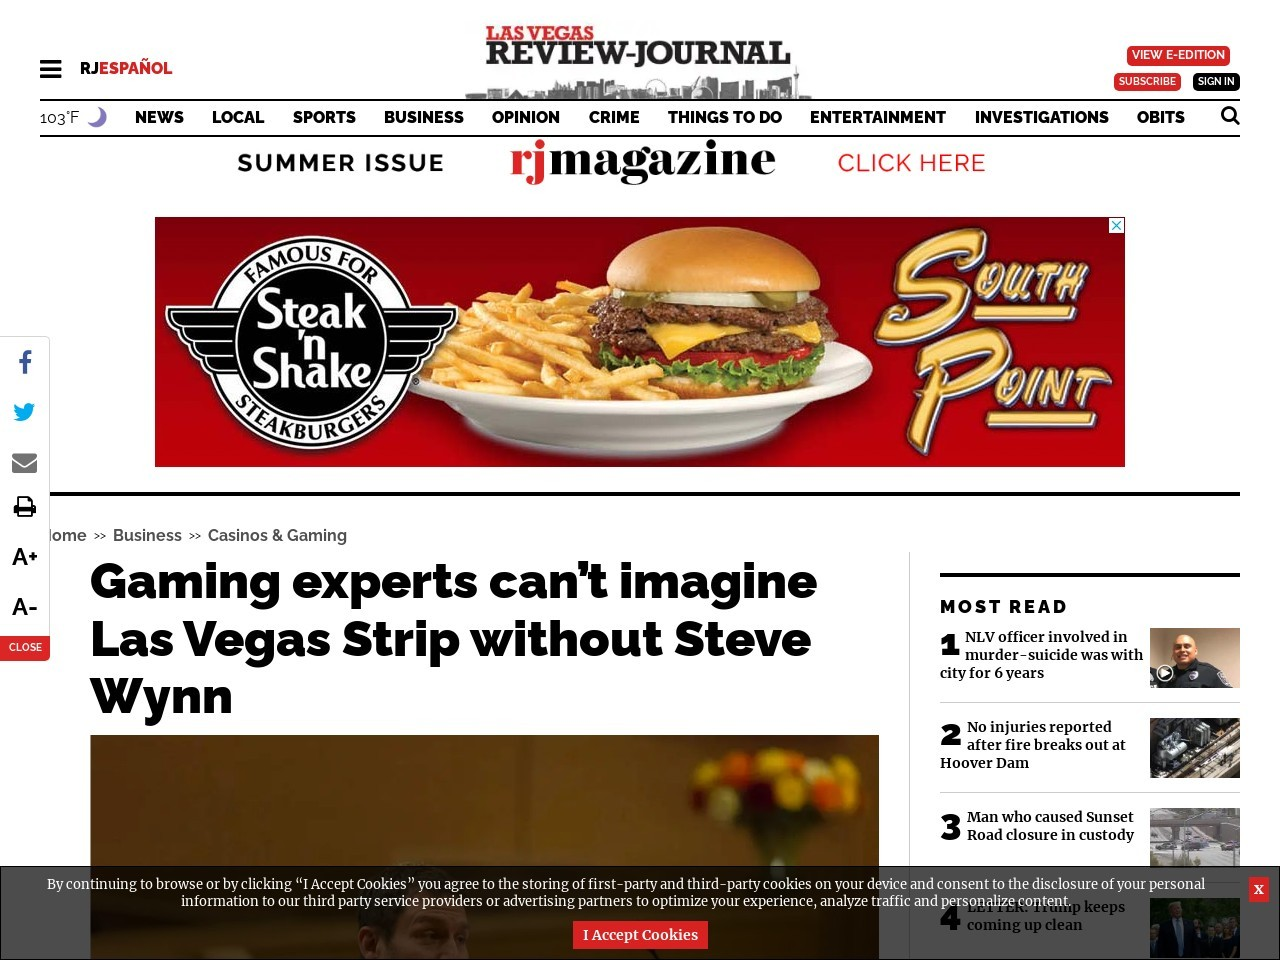 Gaming experts can't imagine Las Vegas Strip without Steve Wynn